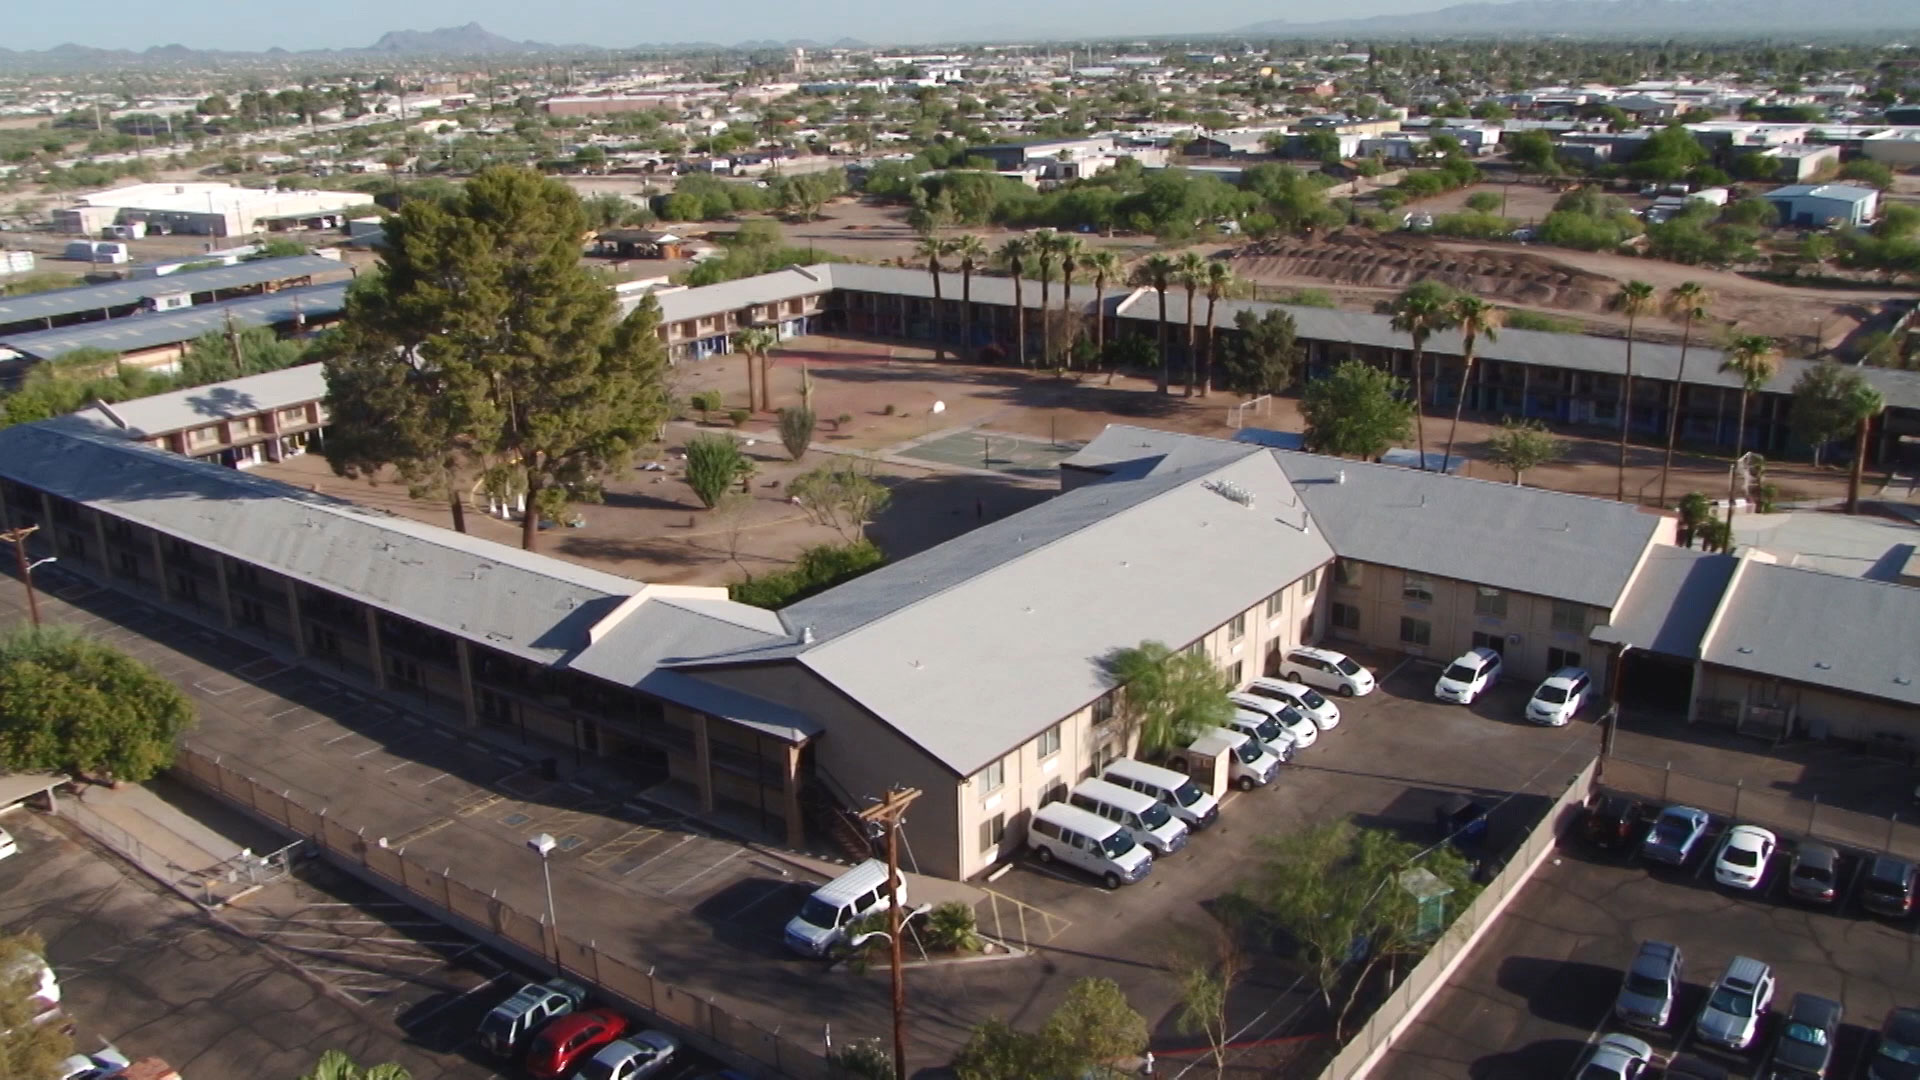 A view of Southwest Key's facility in Tucson.